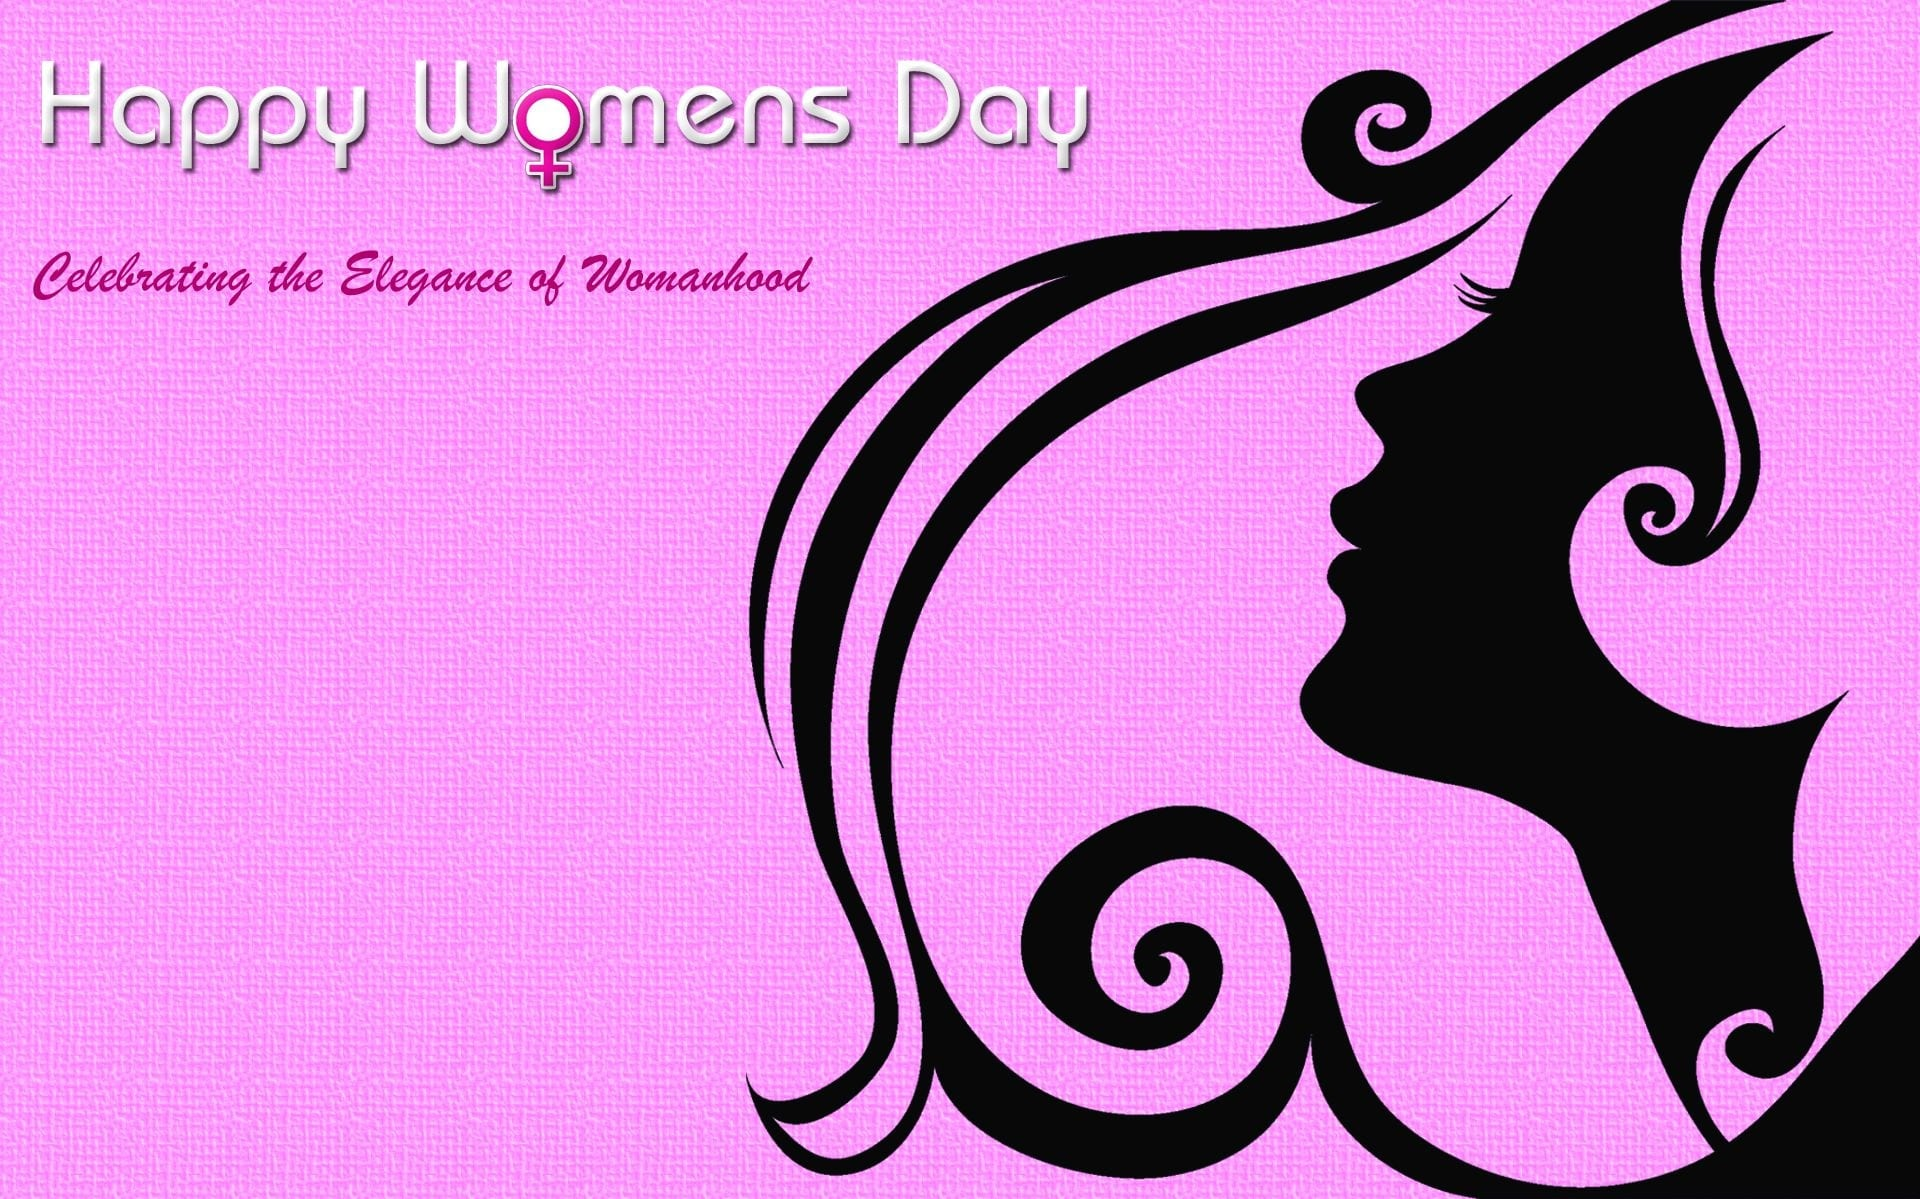 Happy International Women's Day Desktop Background and Images